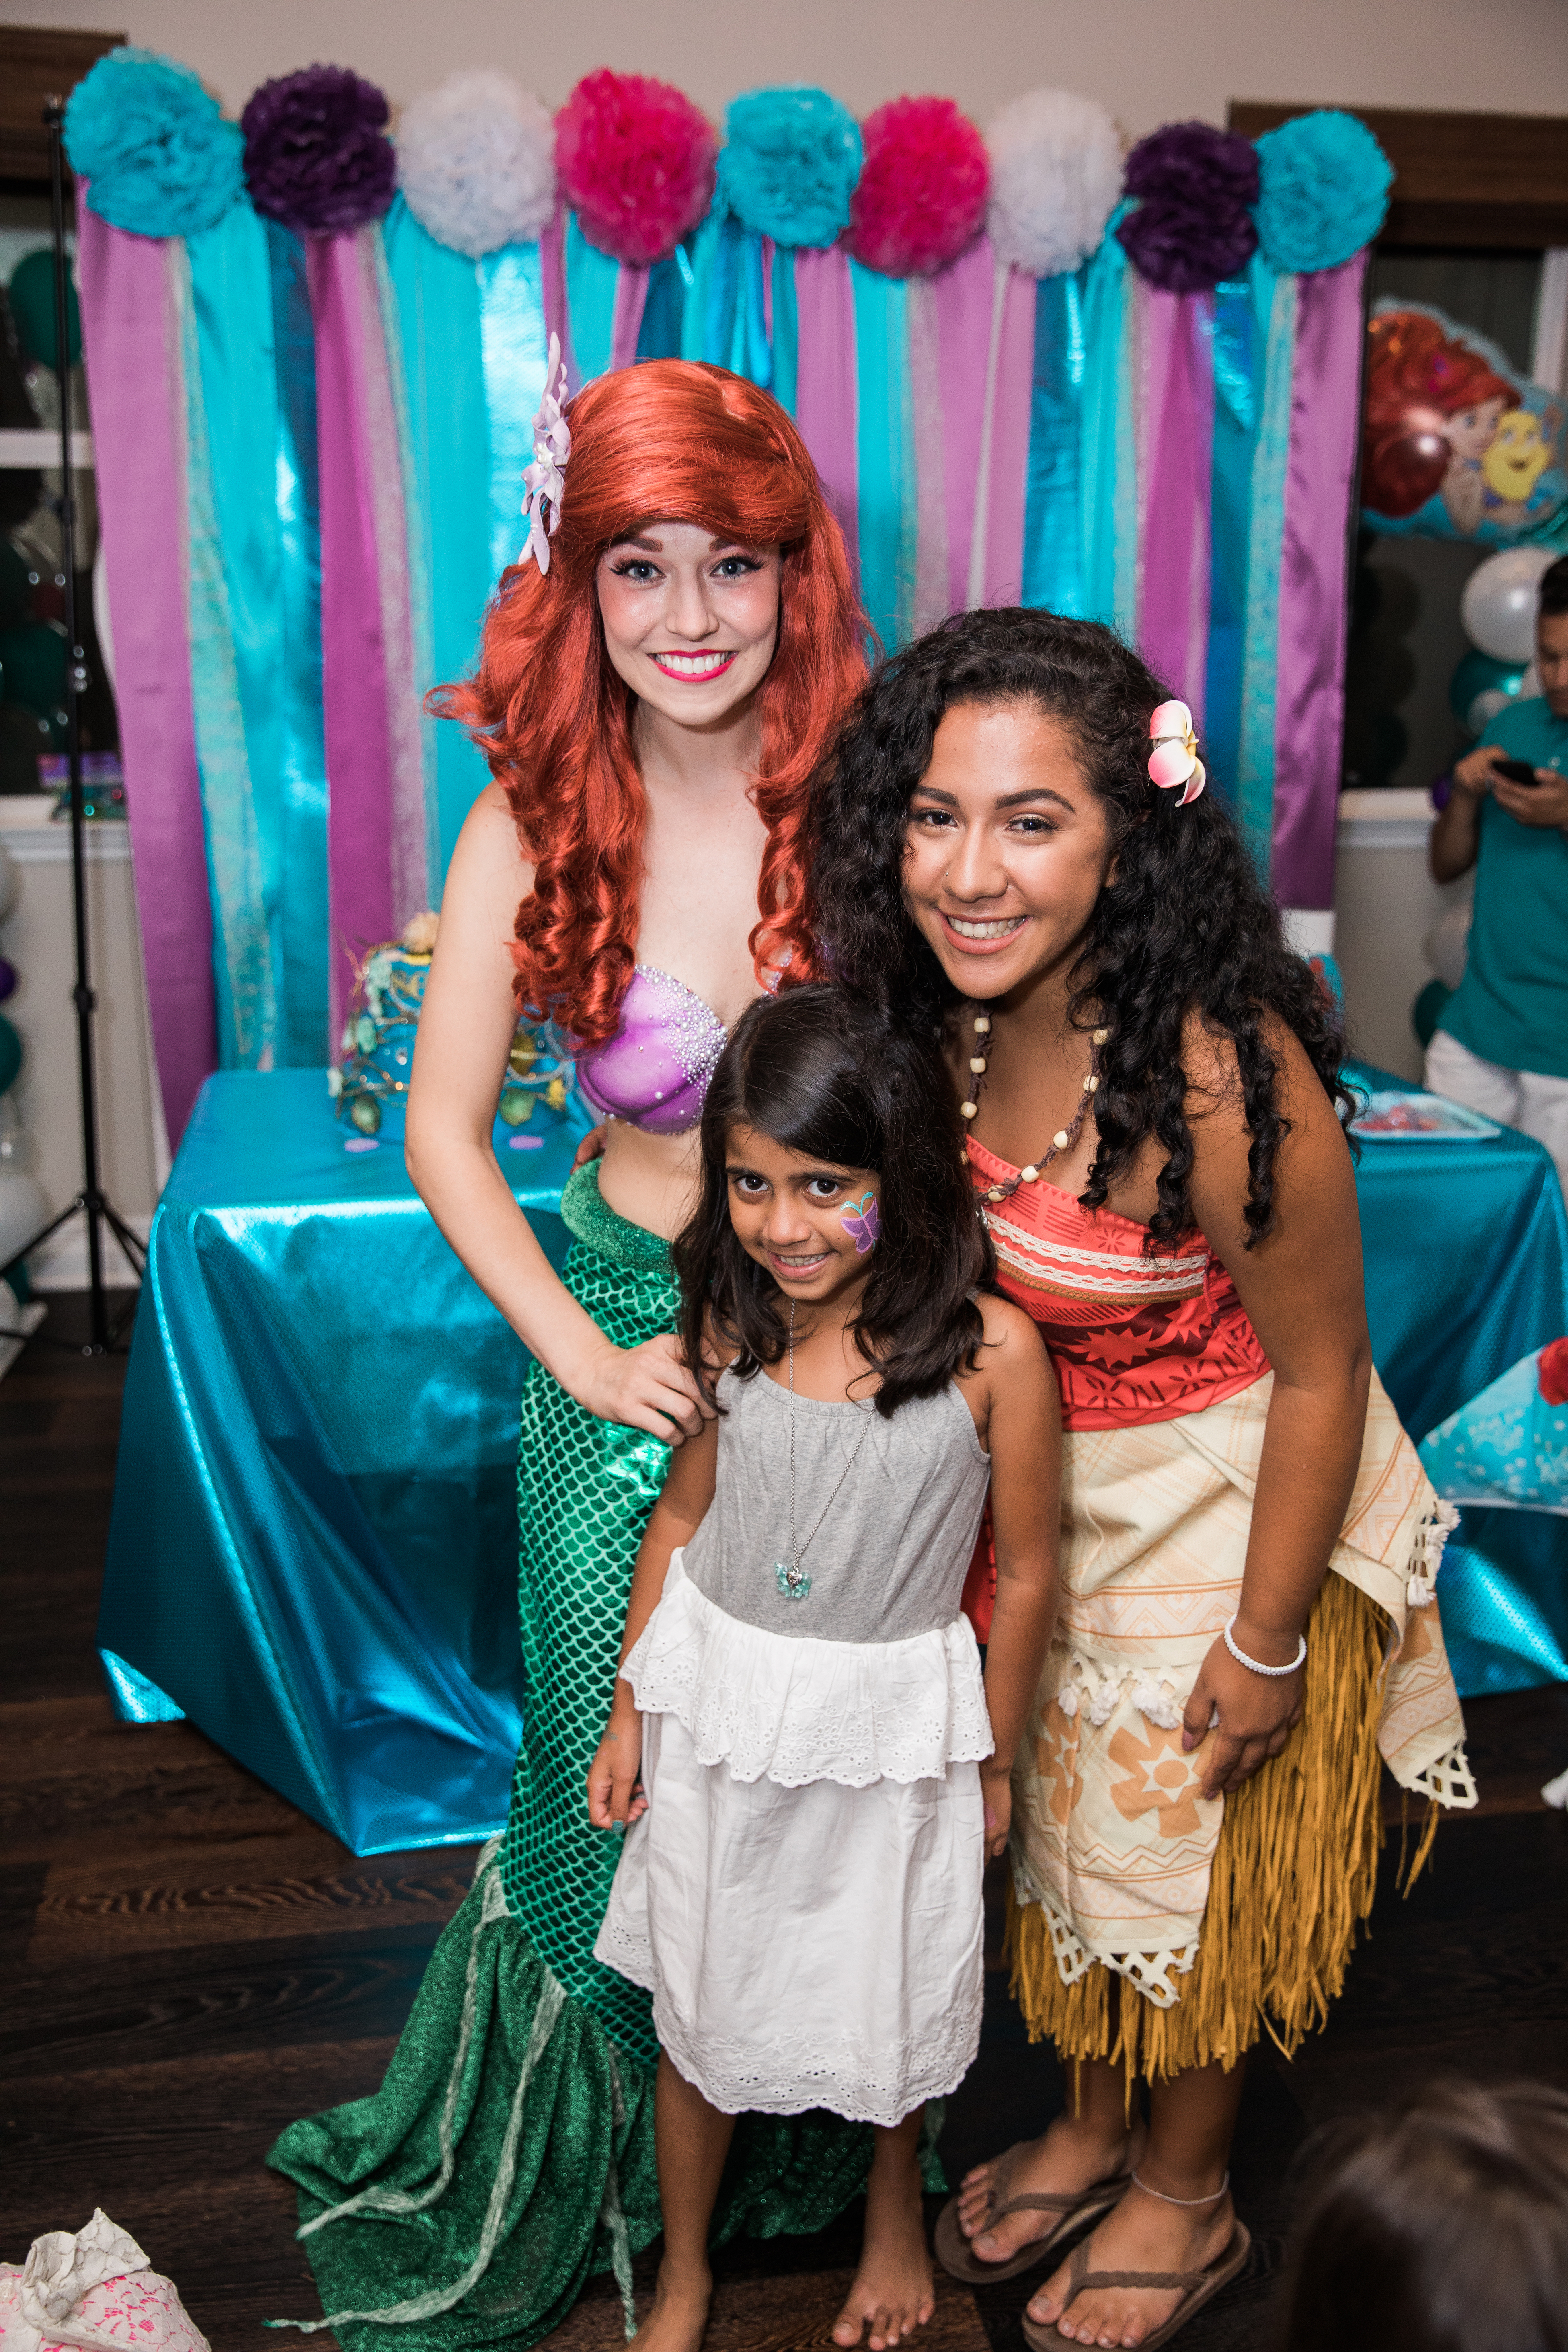 Ariel and Moana Party Characters